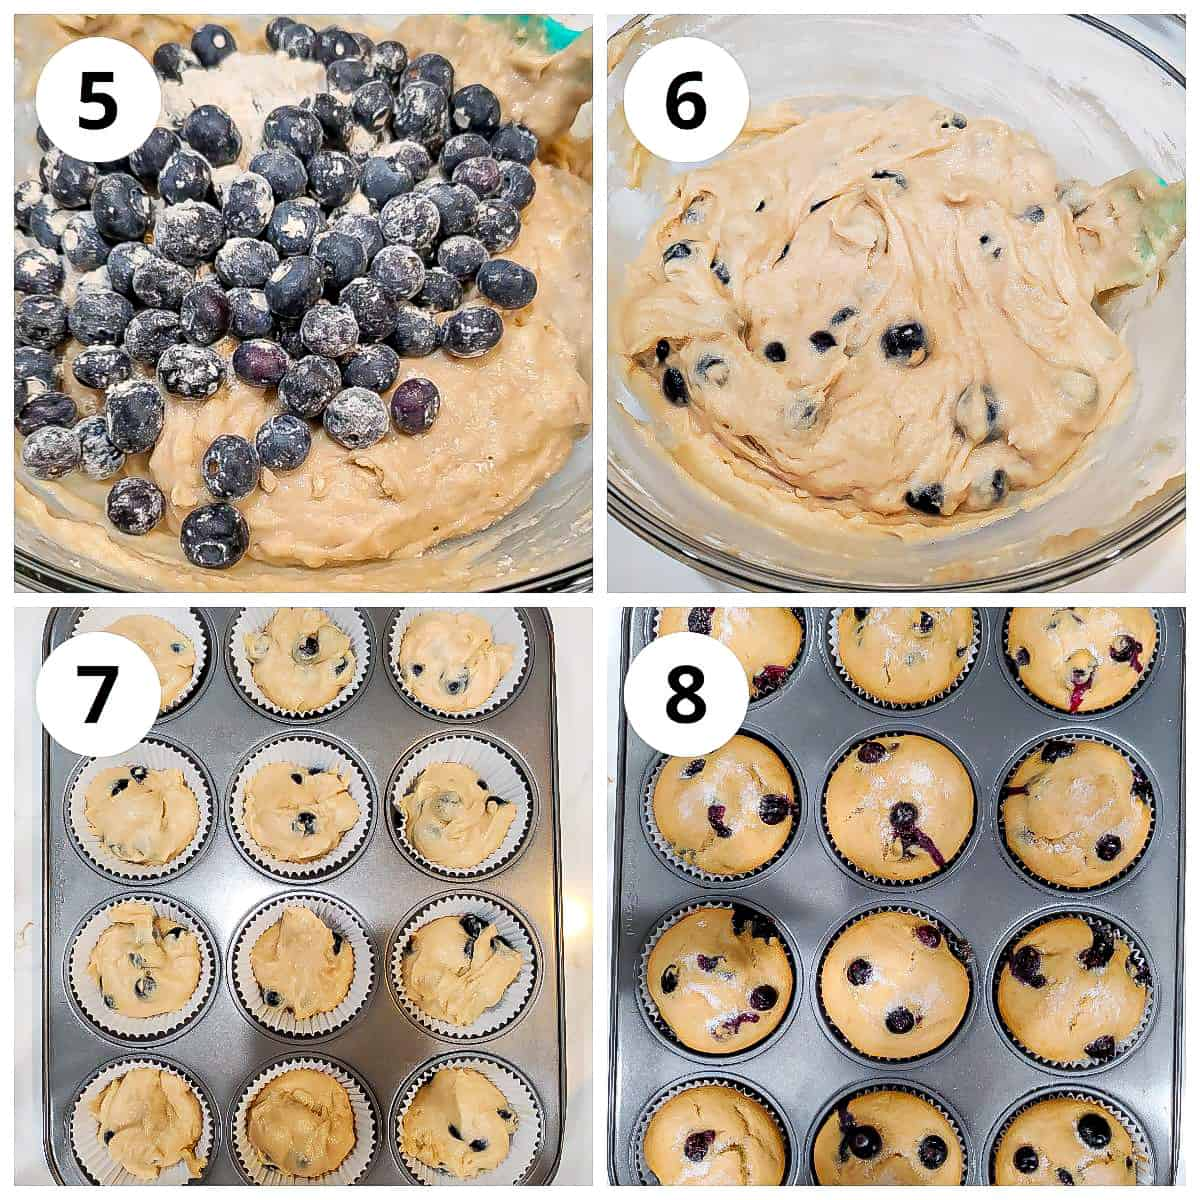 Steps for mixing blueberries into the batter, scoping into tray and baking the muffins